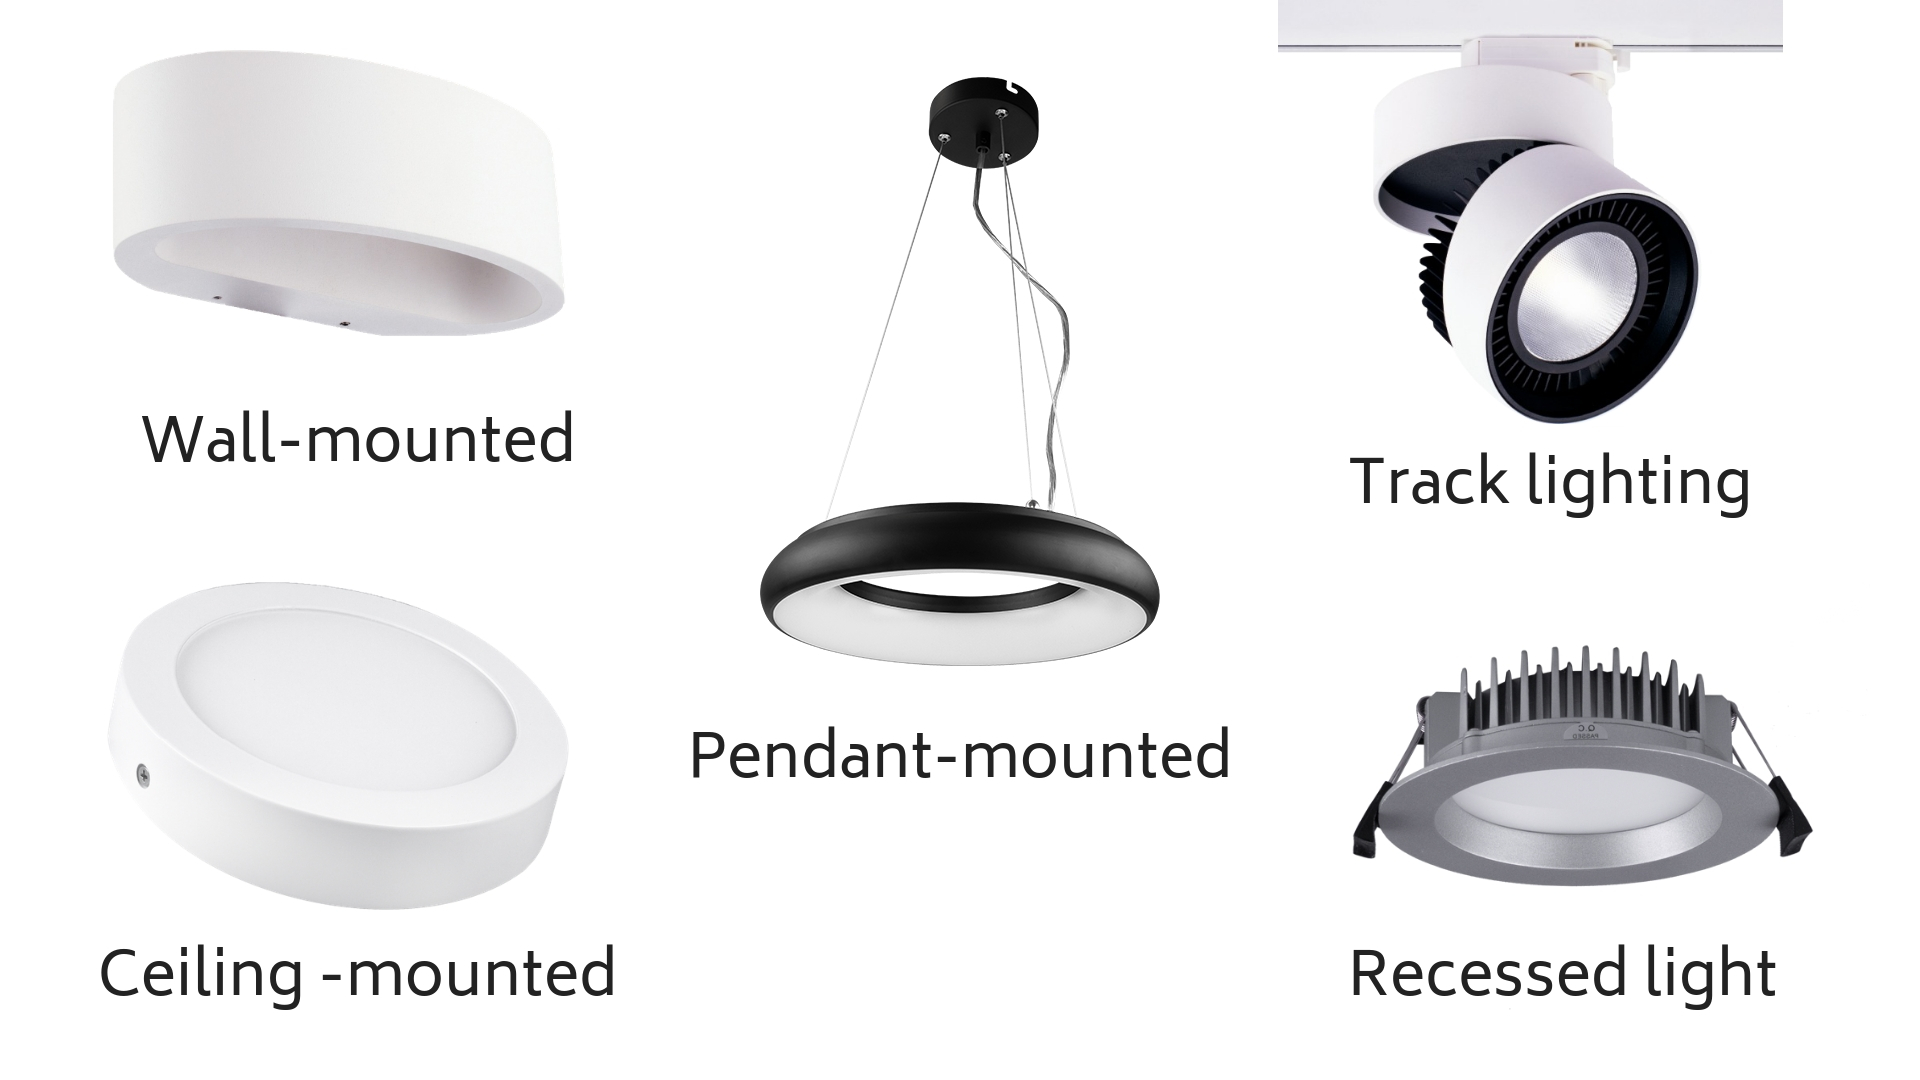 Choosing the right architectural lighting fixture